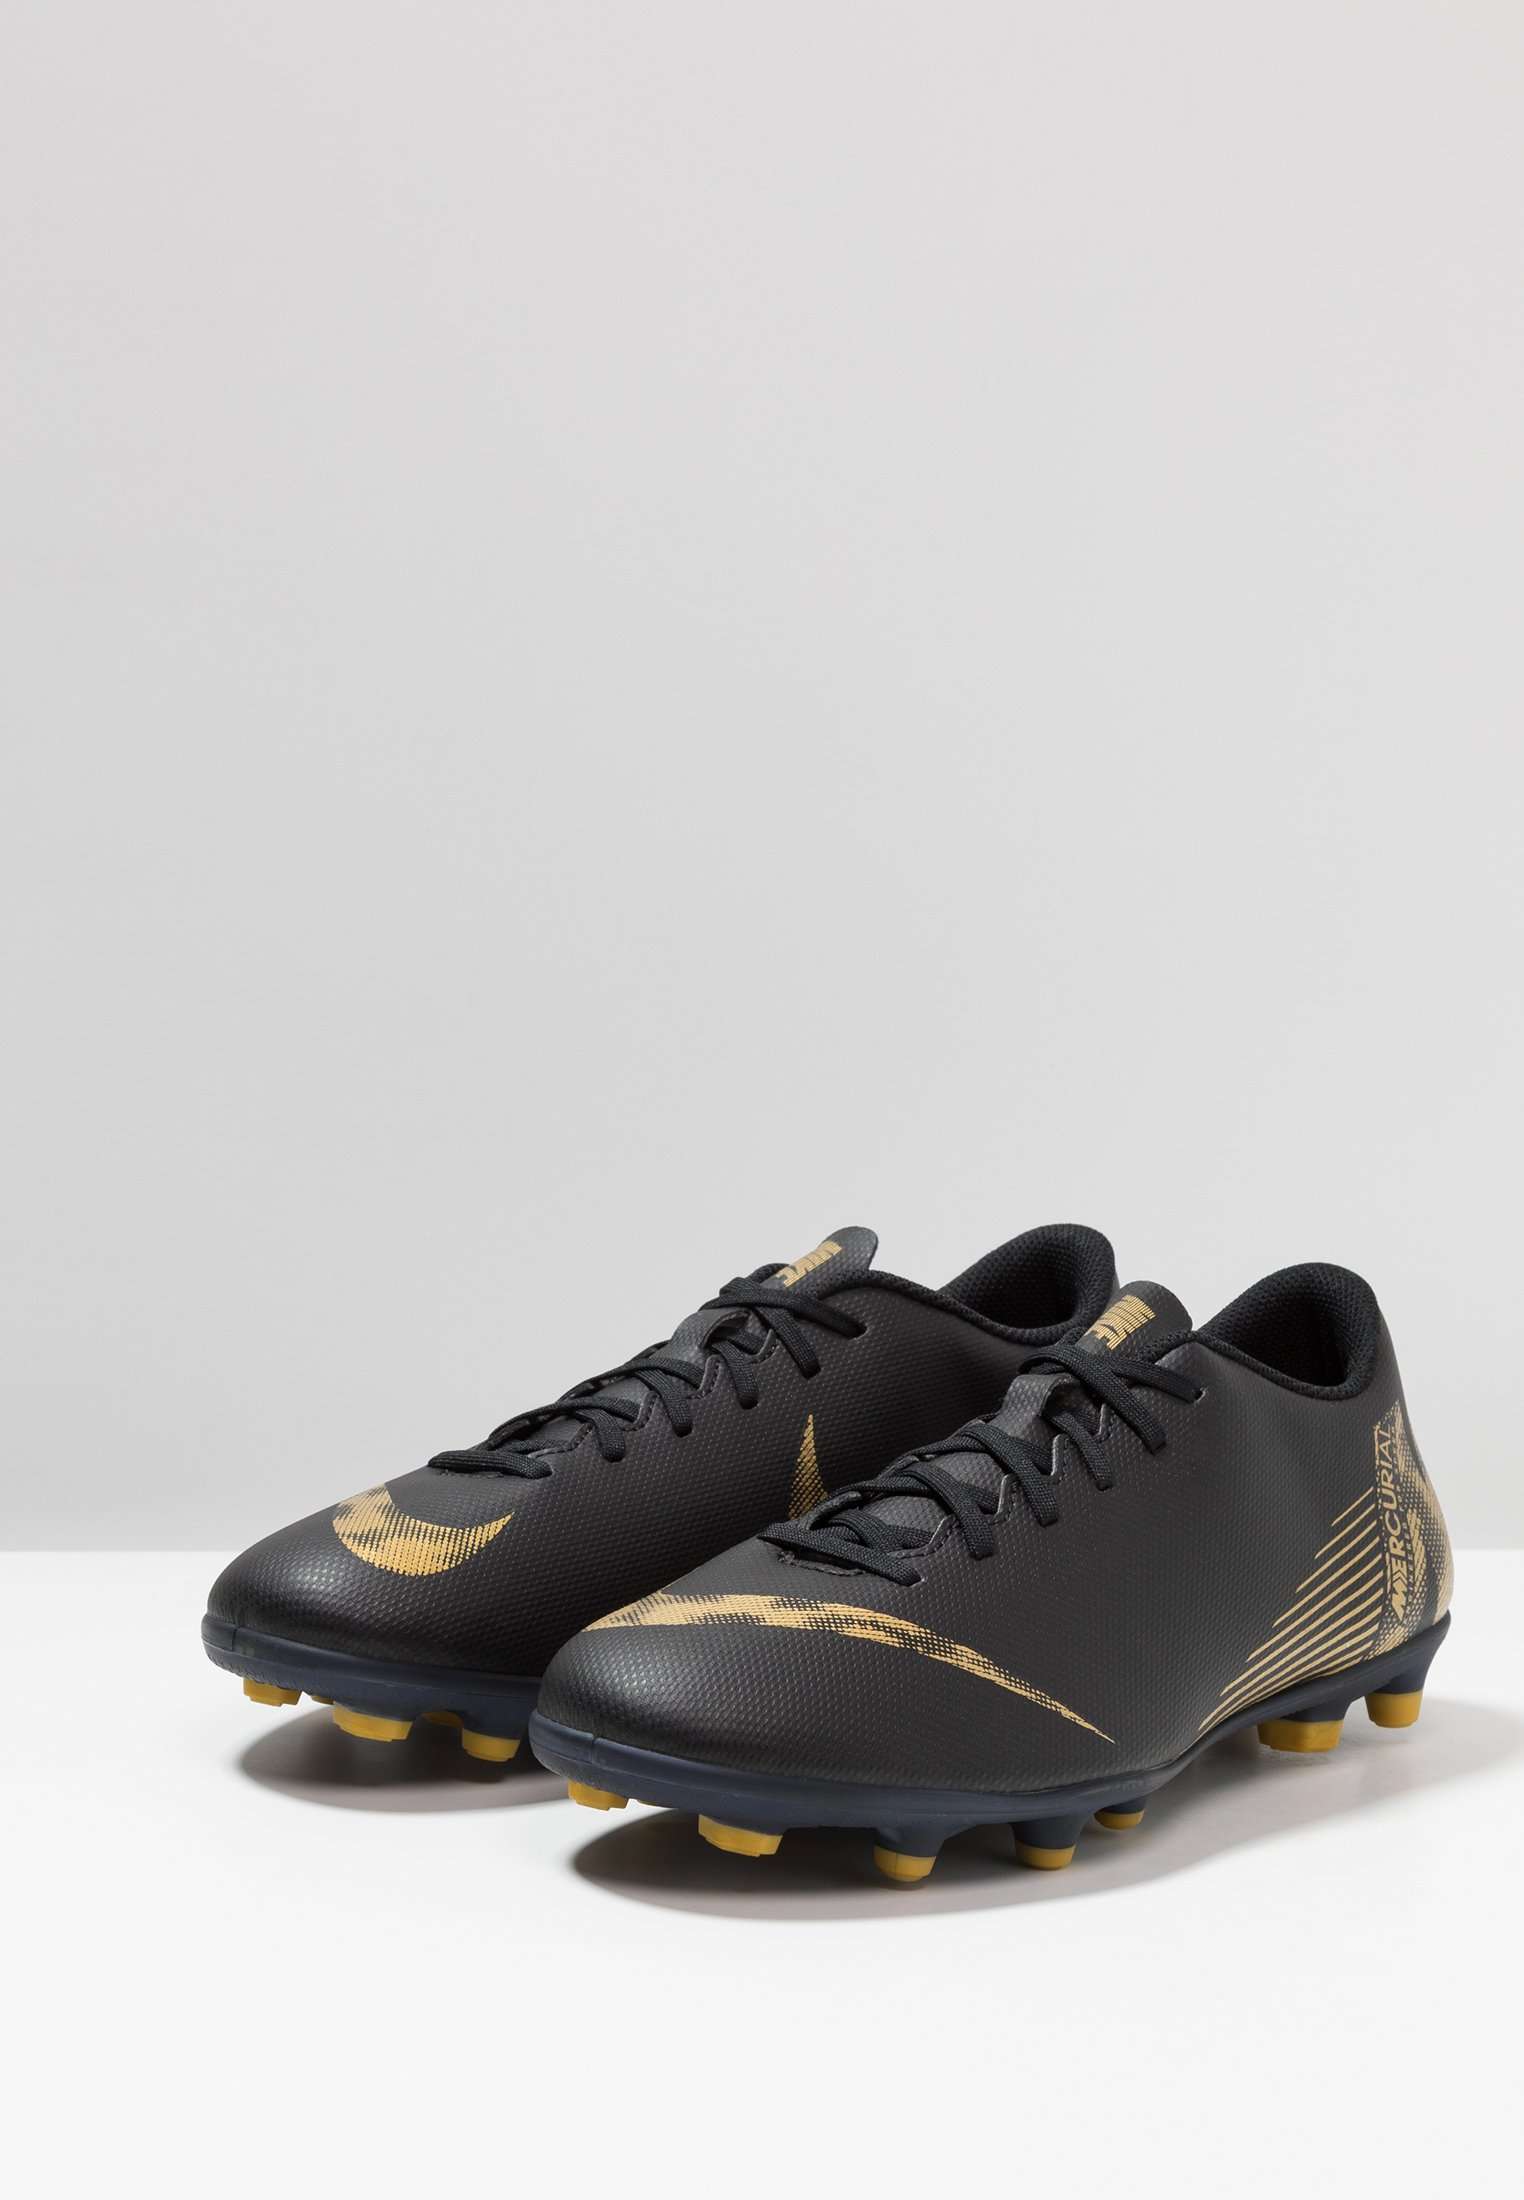 12 Tacchetti Black Con Gold Mercurial Vapor Da metallic Club MgScarpe Vivid Calcetto Nike Performance nO0wkPXN8